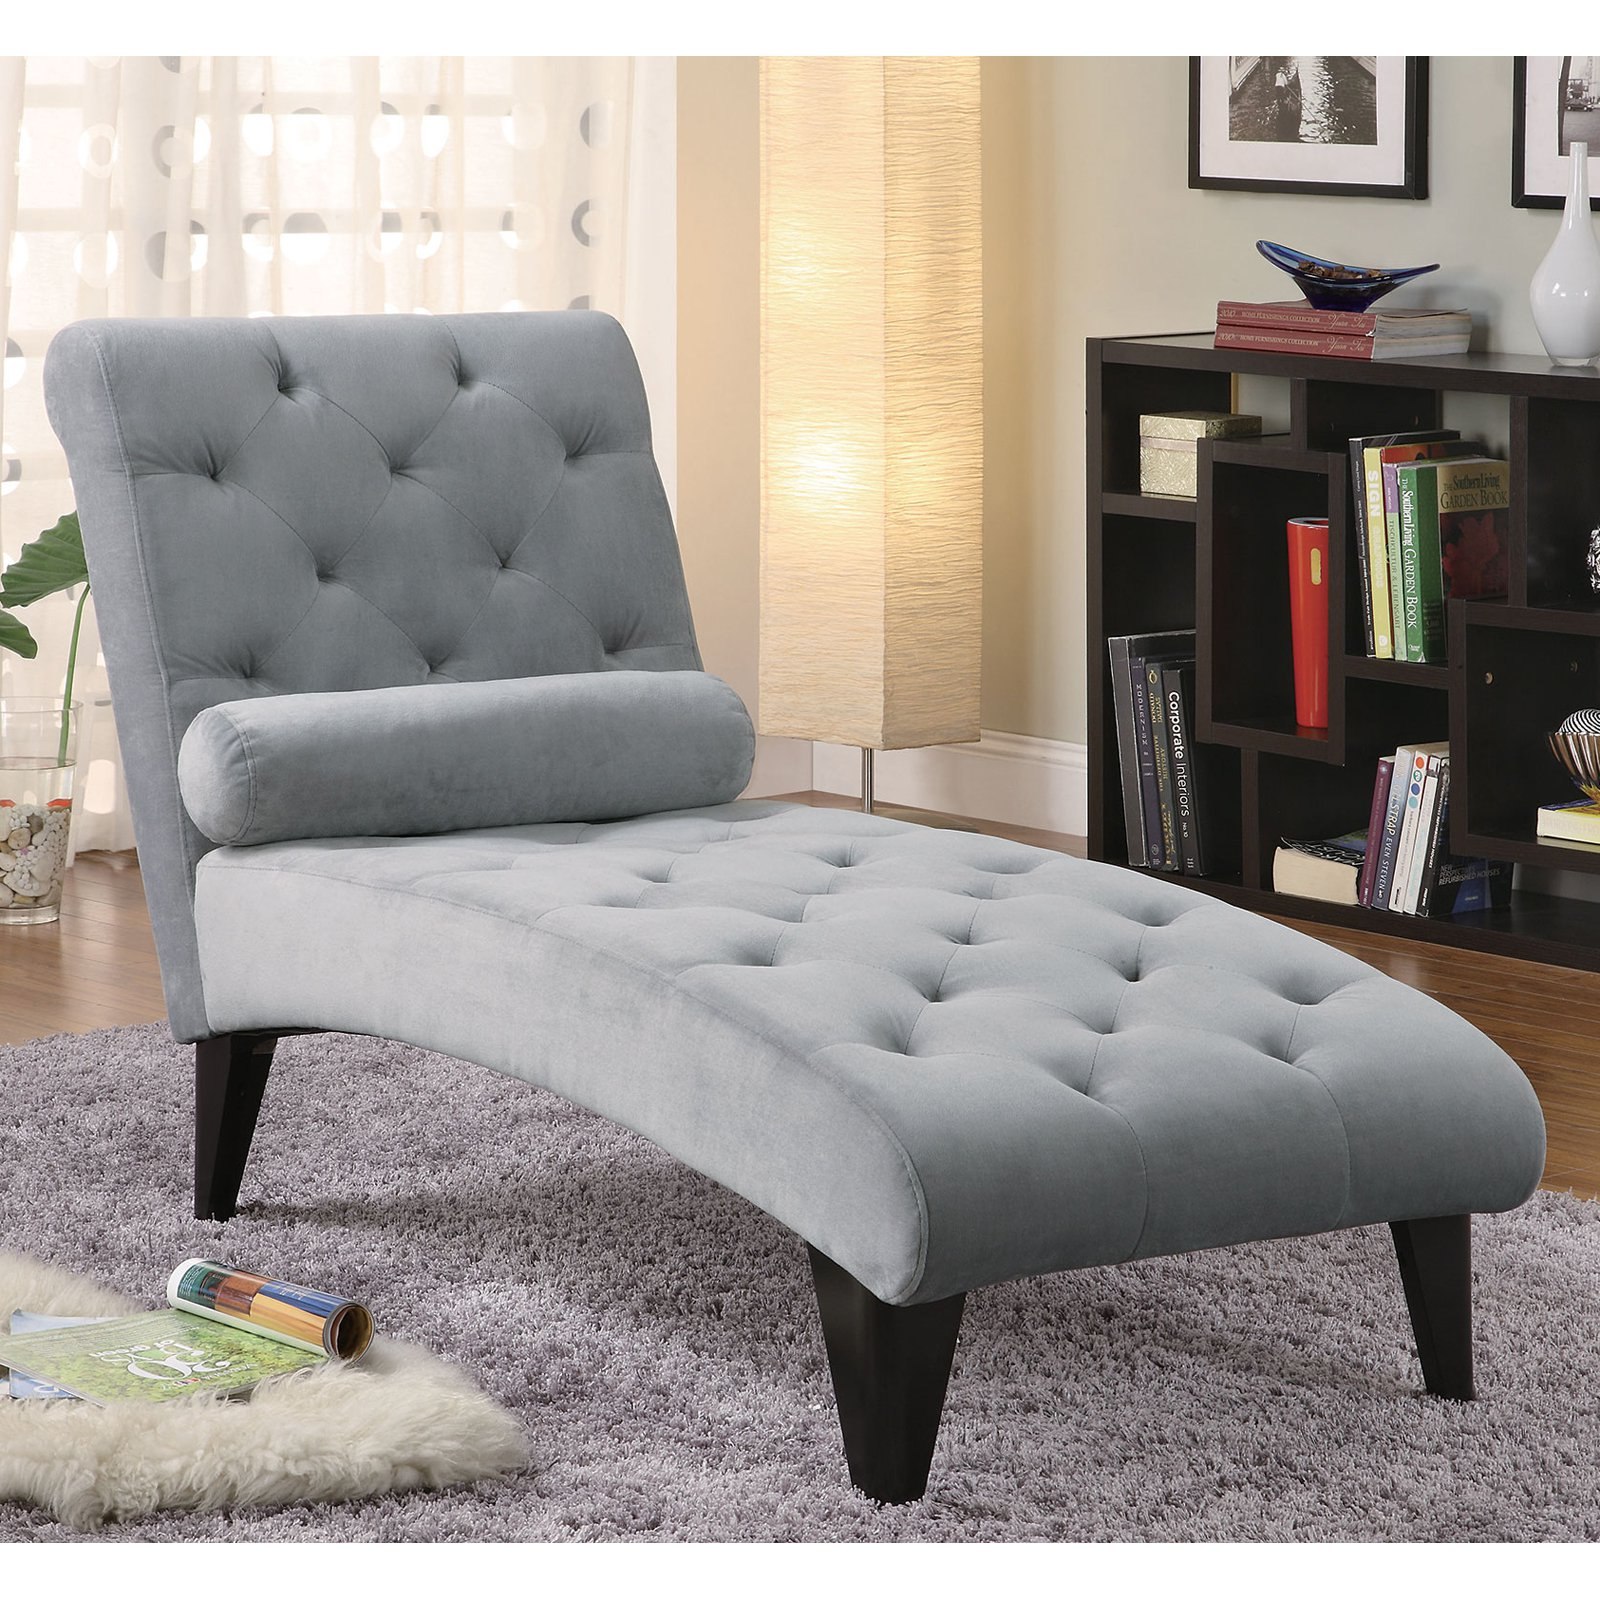 Coaster Accent Seating Soft Gray Velour Tufted Chaise in Black Finish